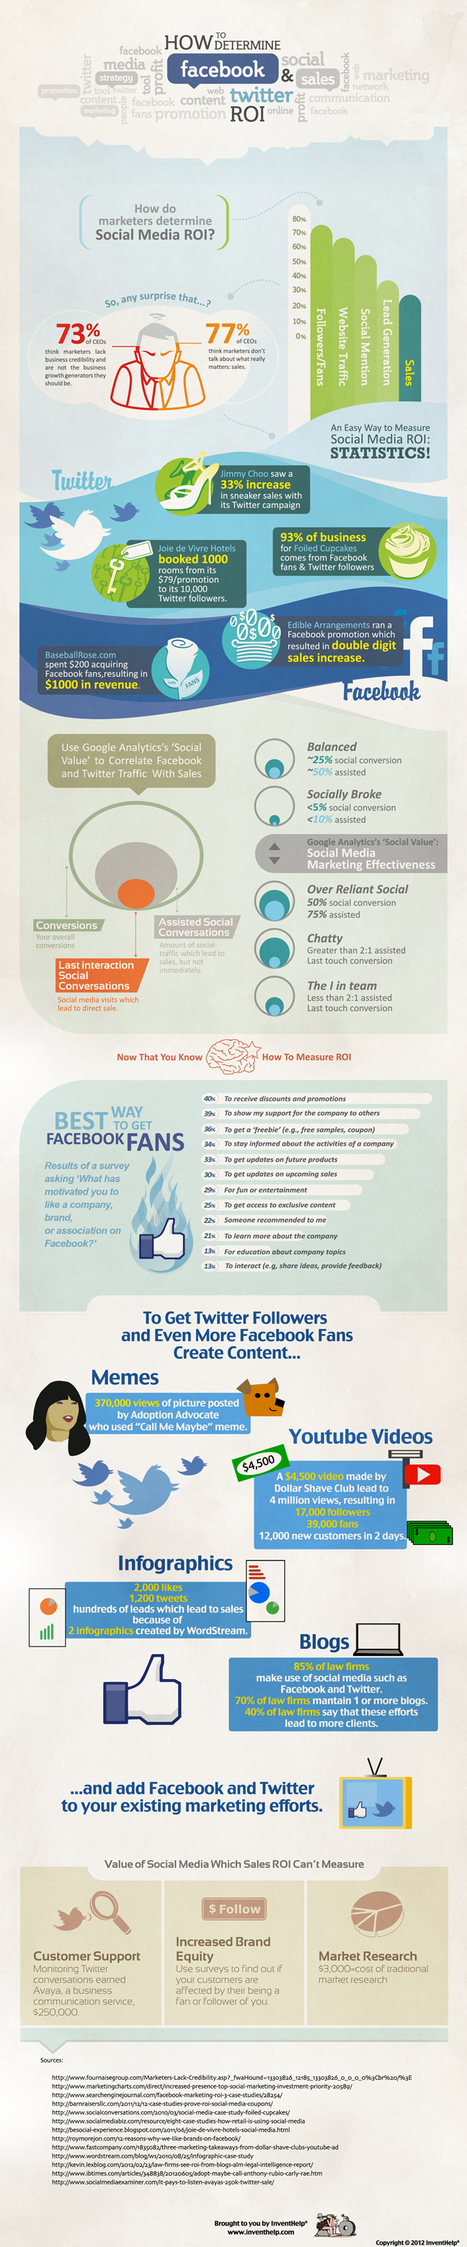 Infographic: How To Determine Facebook and Twitter ROI | Social Media Explorer | Tracking Transmedia | Scoop.it